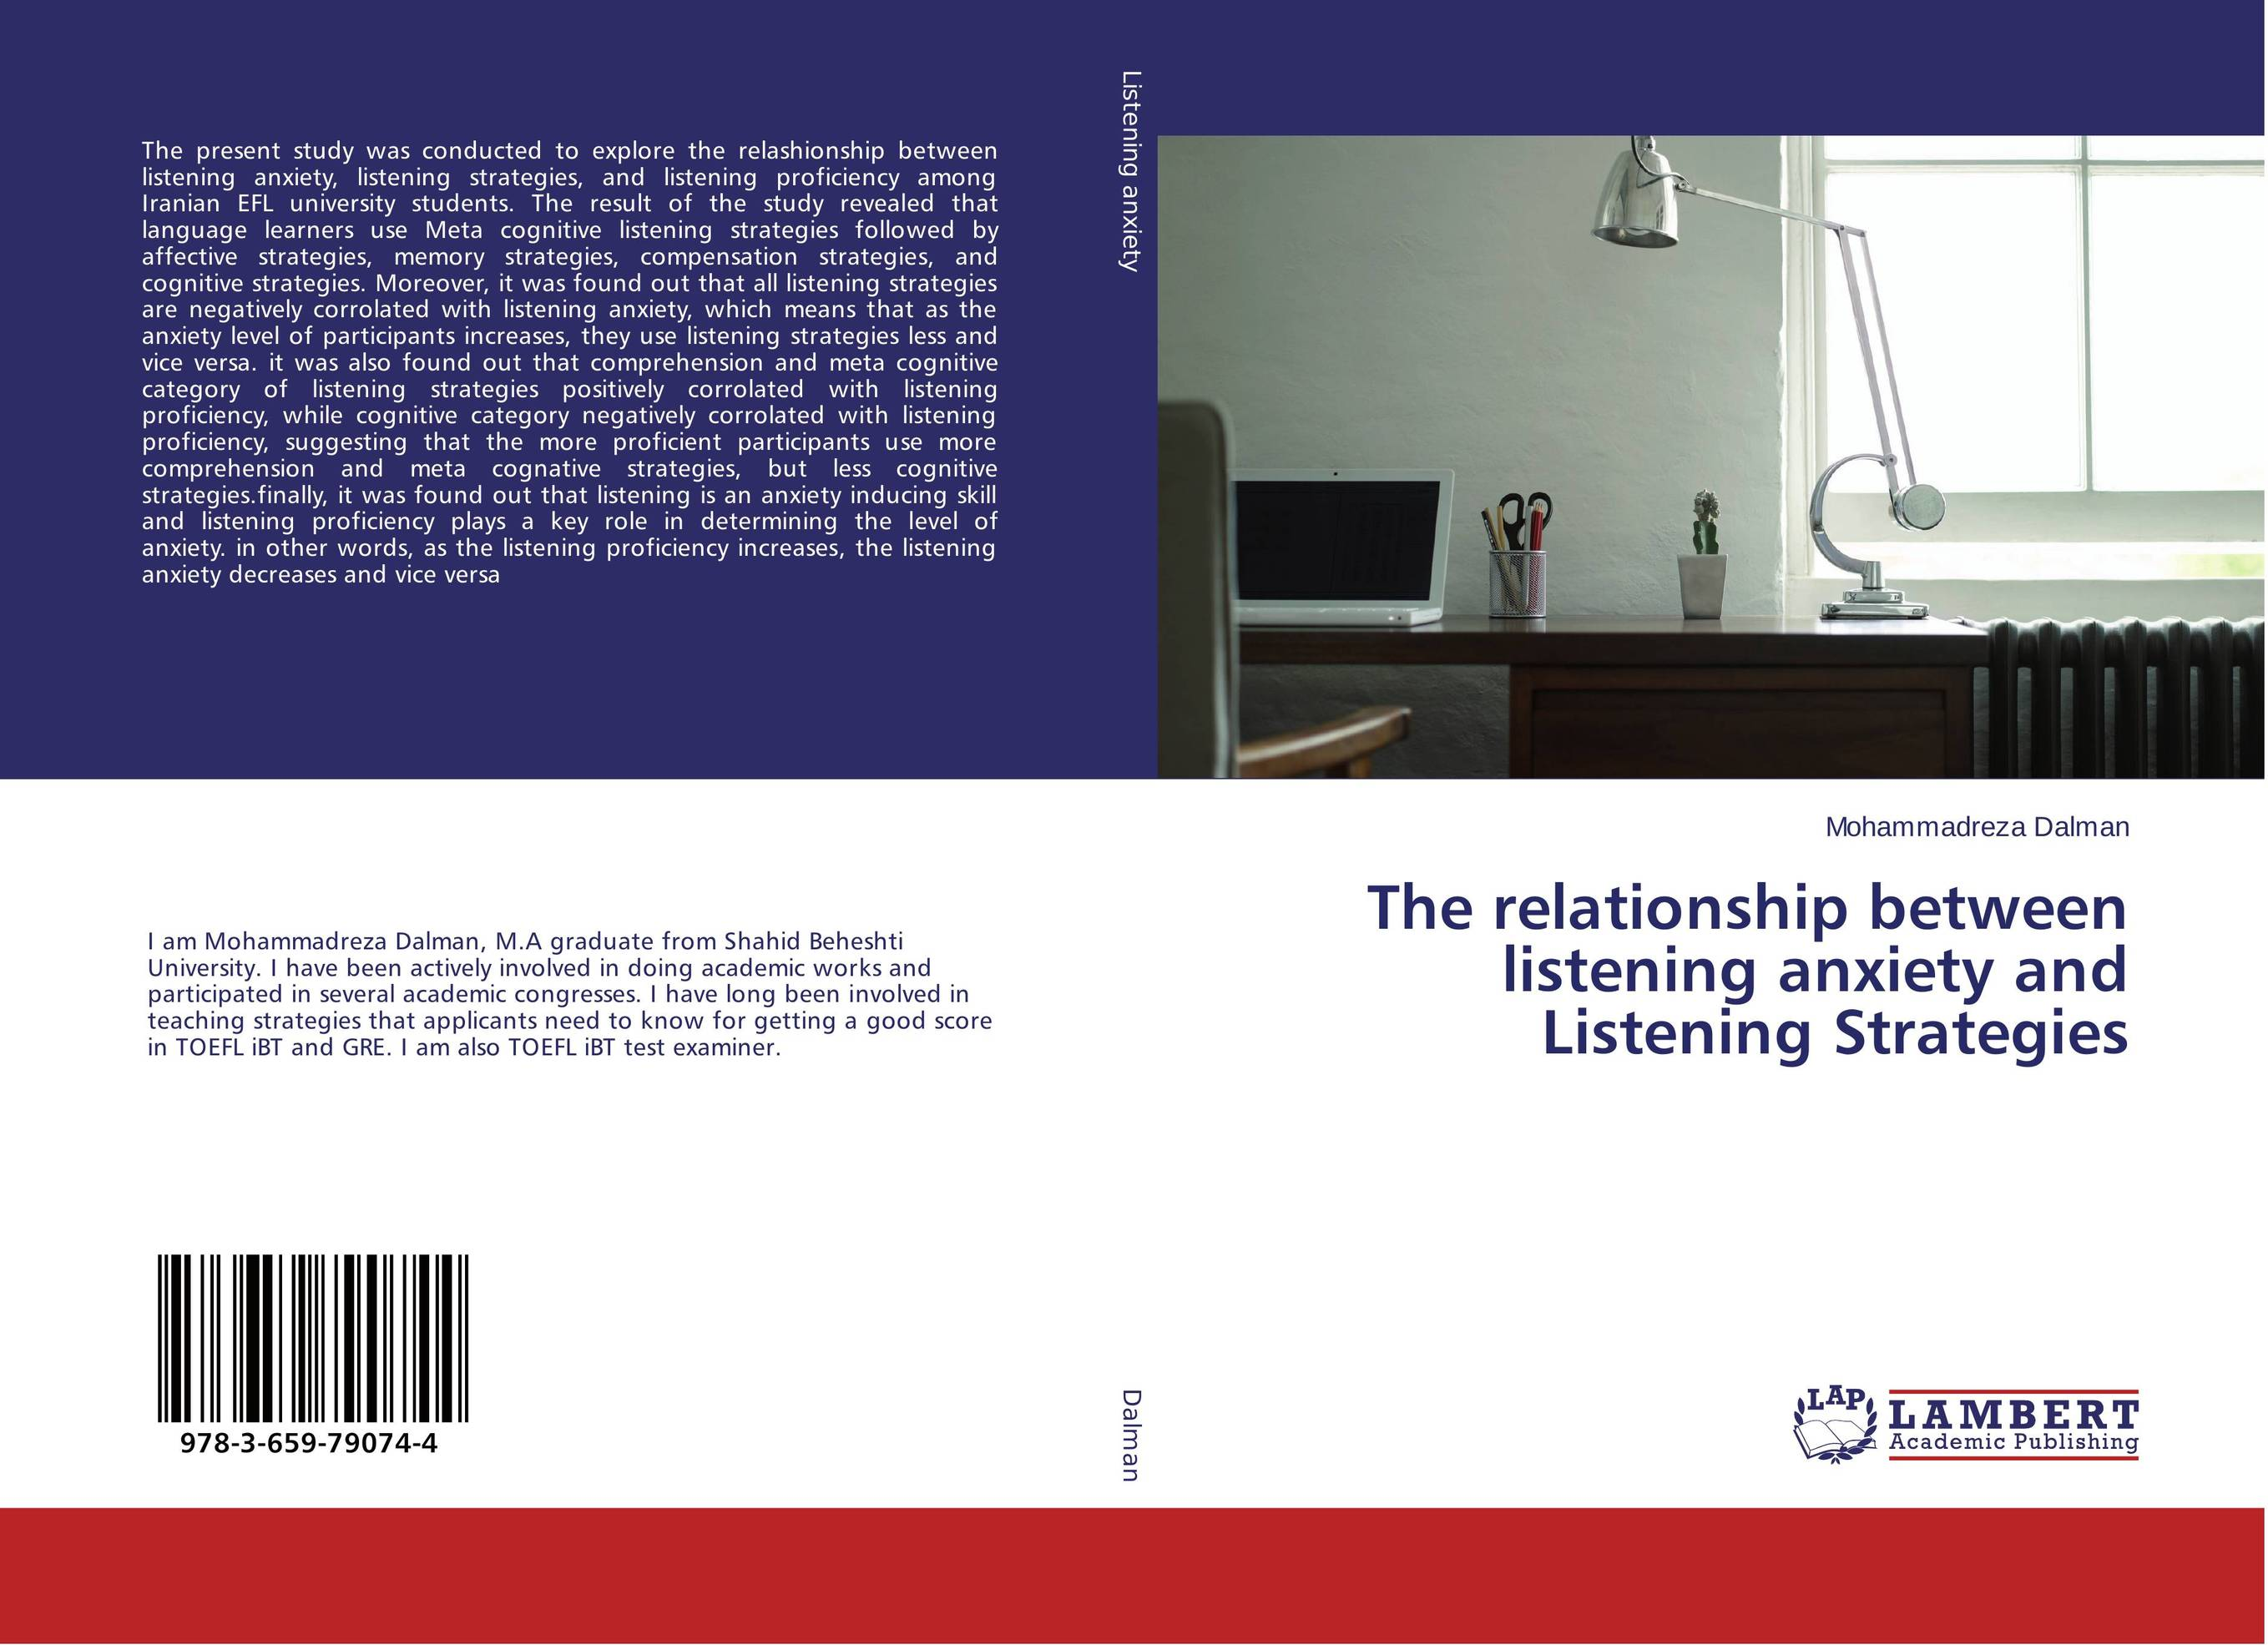 The relationship between listening anxiety and Listening Strategies cognitive mechanisms and individual strategies